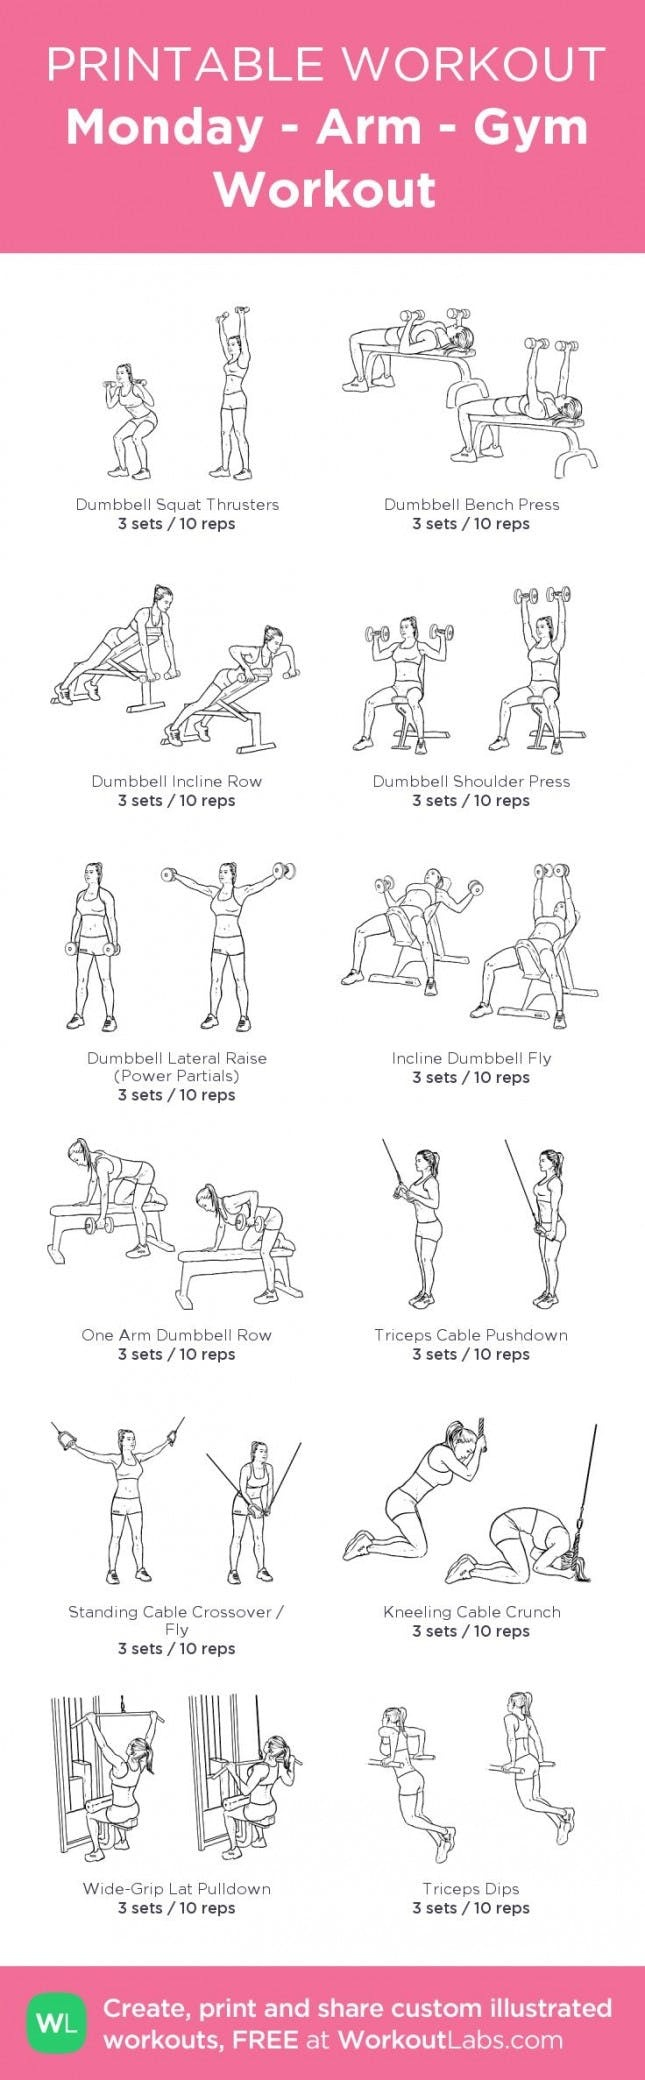 10 Free Printable Workouts To Get Fit Anywhere | Brit + Co - Free Printable Gym Workout Plans